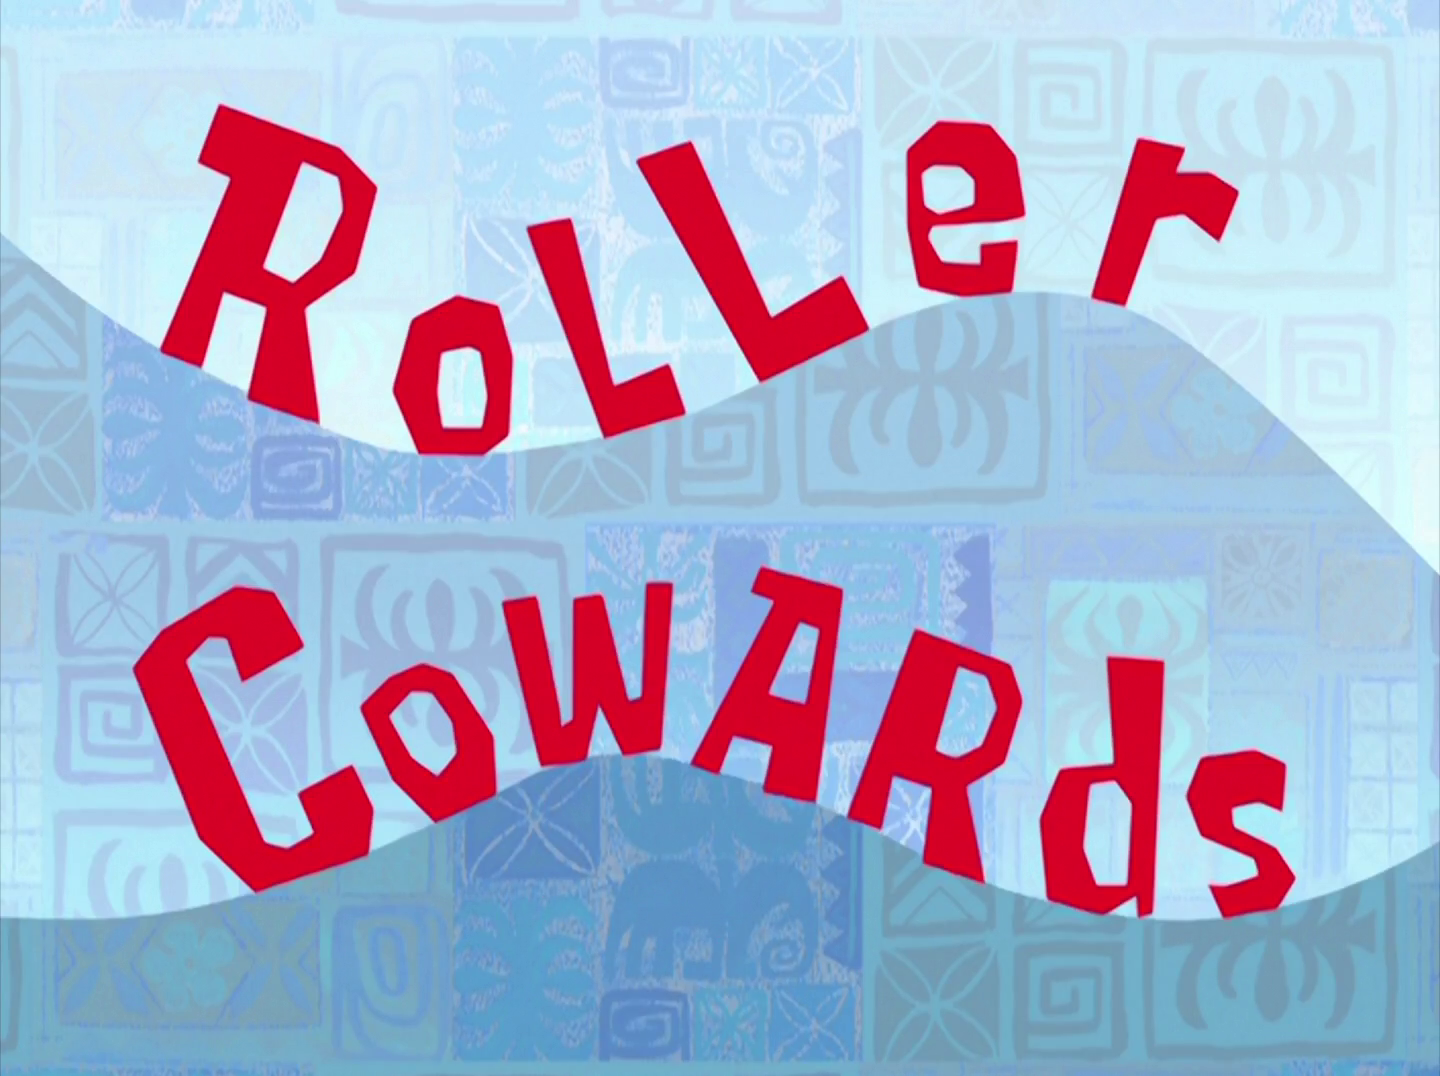 Roller Cowards/transcript